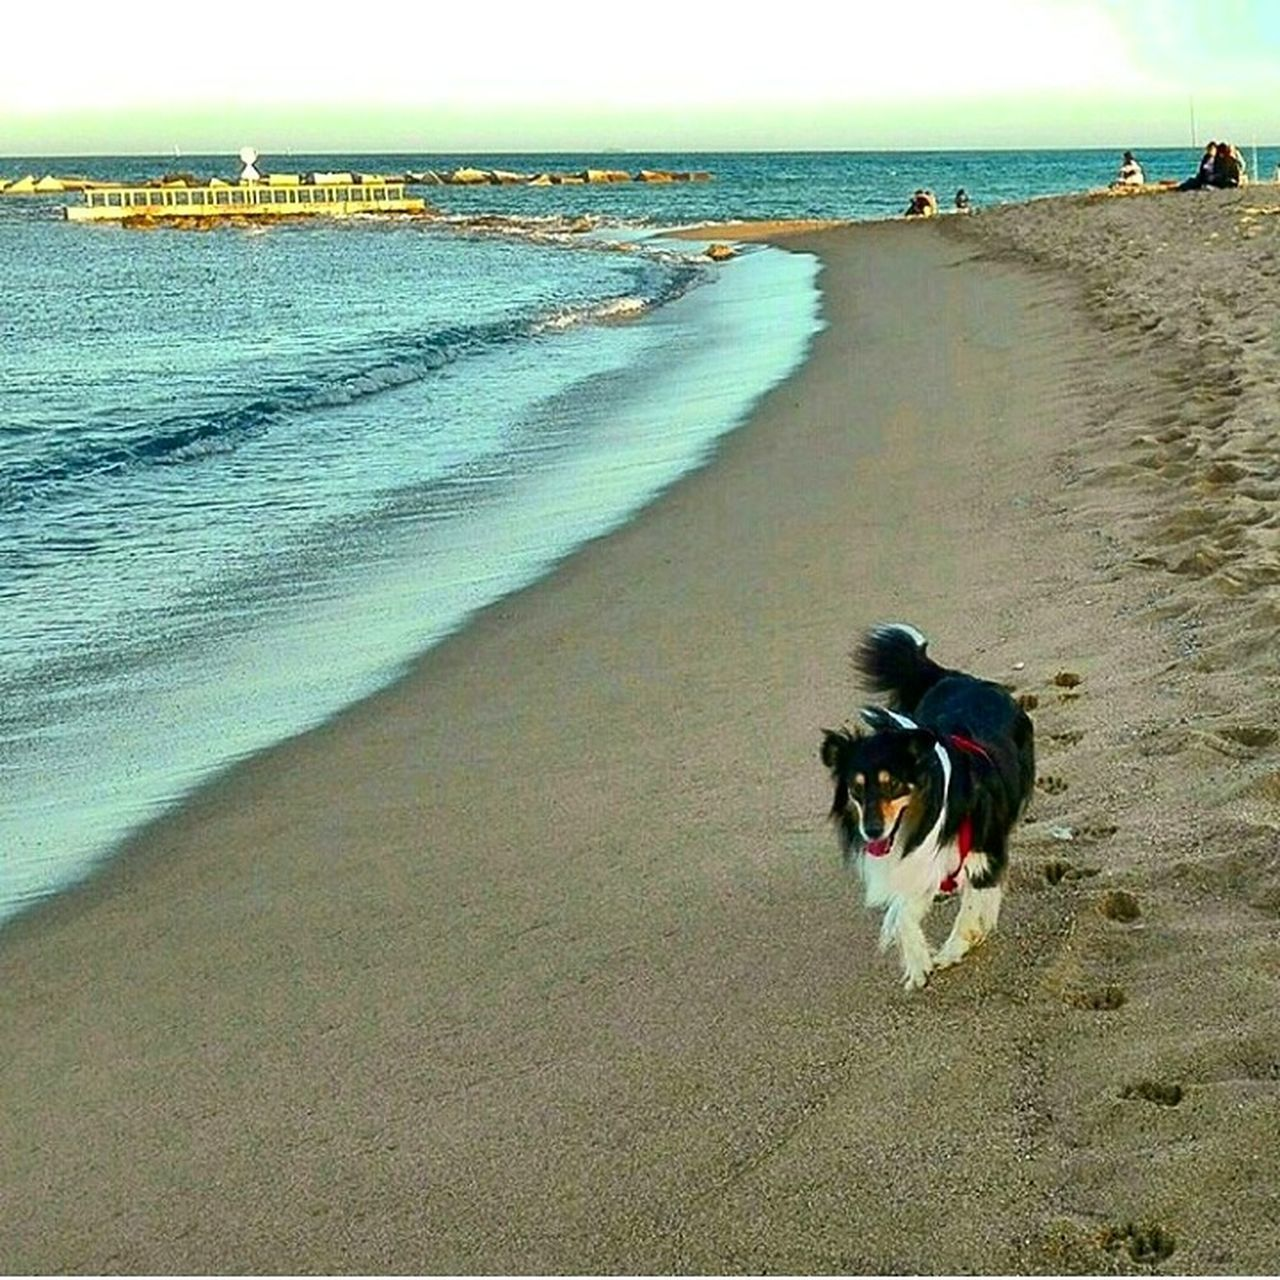 beach, sea, sand, shore, nature, water, beauty in nature, real people, scenics, tranquil scene, horizon over water, dog, day, pets, leisure activity, outdoors, tranquility, lifestyles, one person, animal themes, wave, domestic animals, mammal, sky, clear sky, people